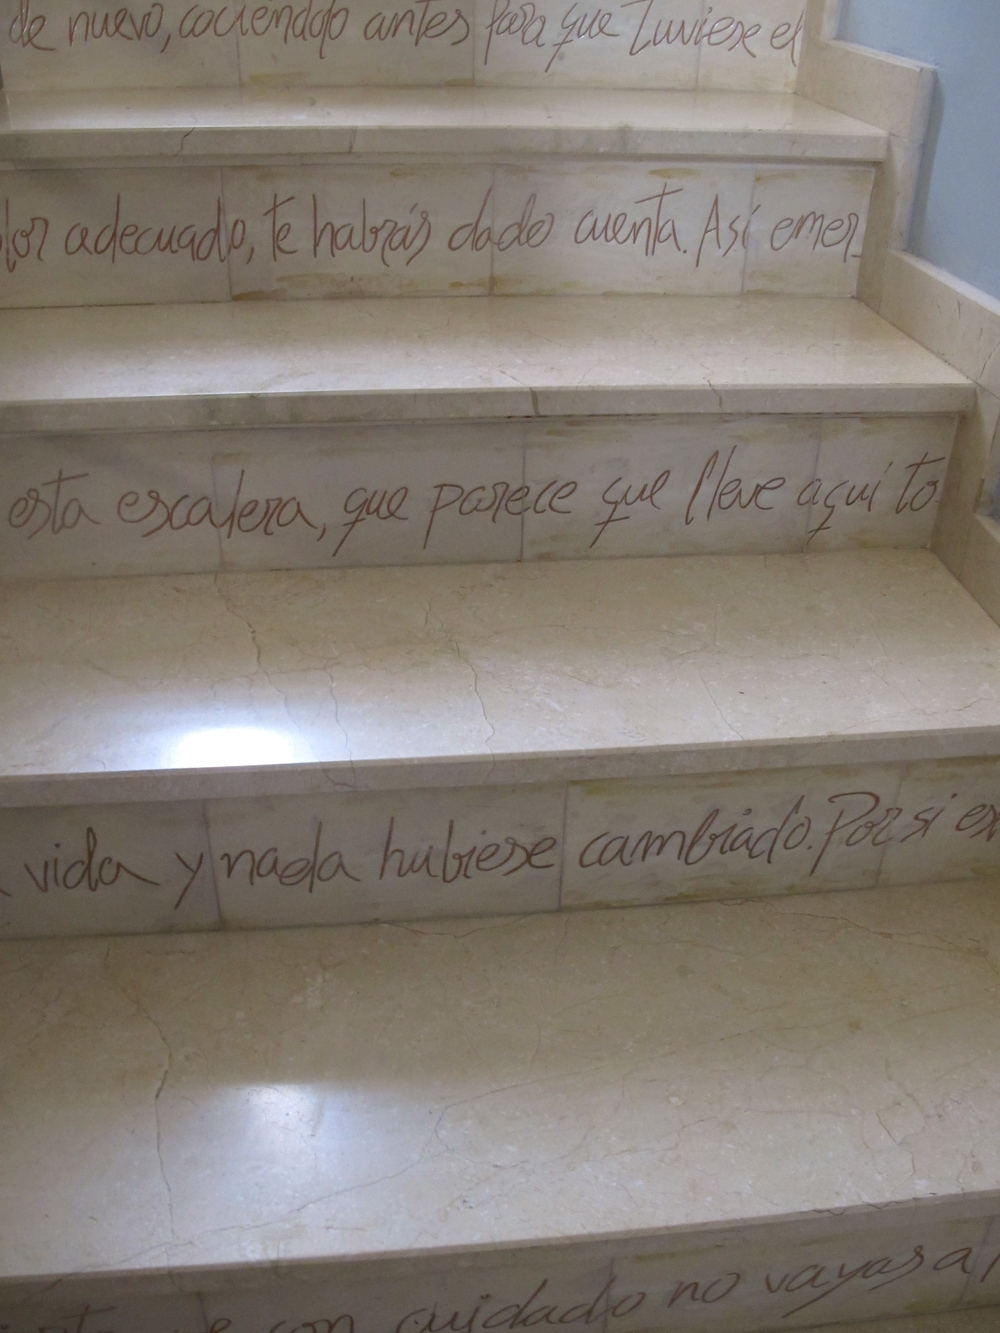 Even the steps in Salustiano and Angela's house and studio have art in them.  This is a poem that has been carved in ceramic slates. Amazing